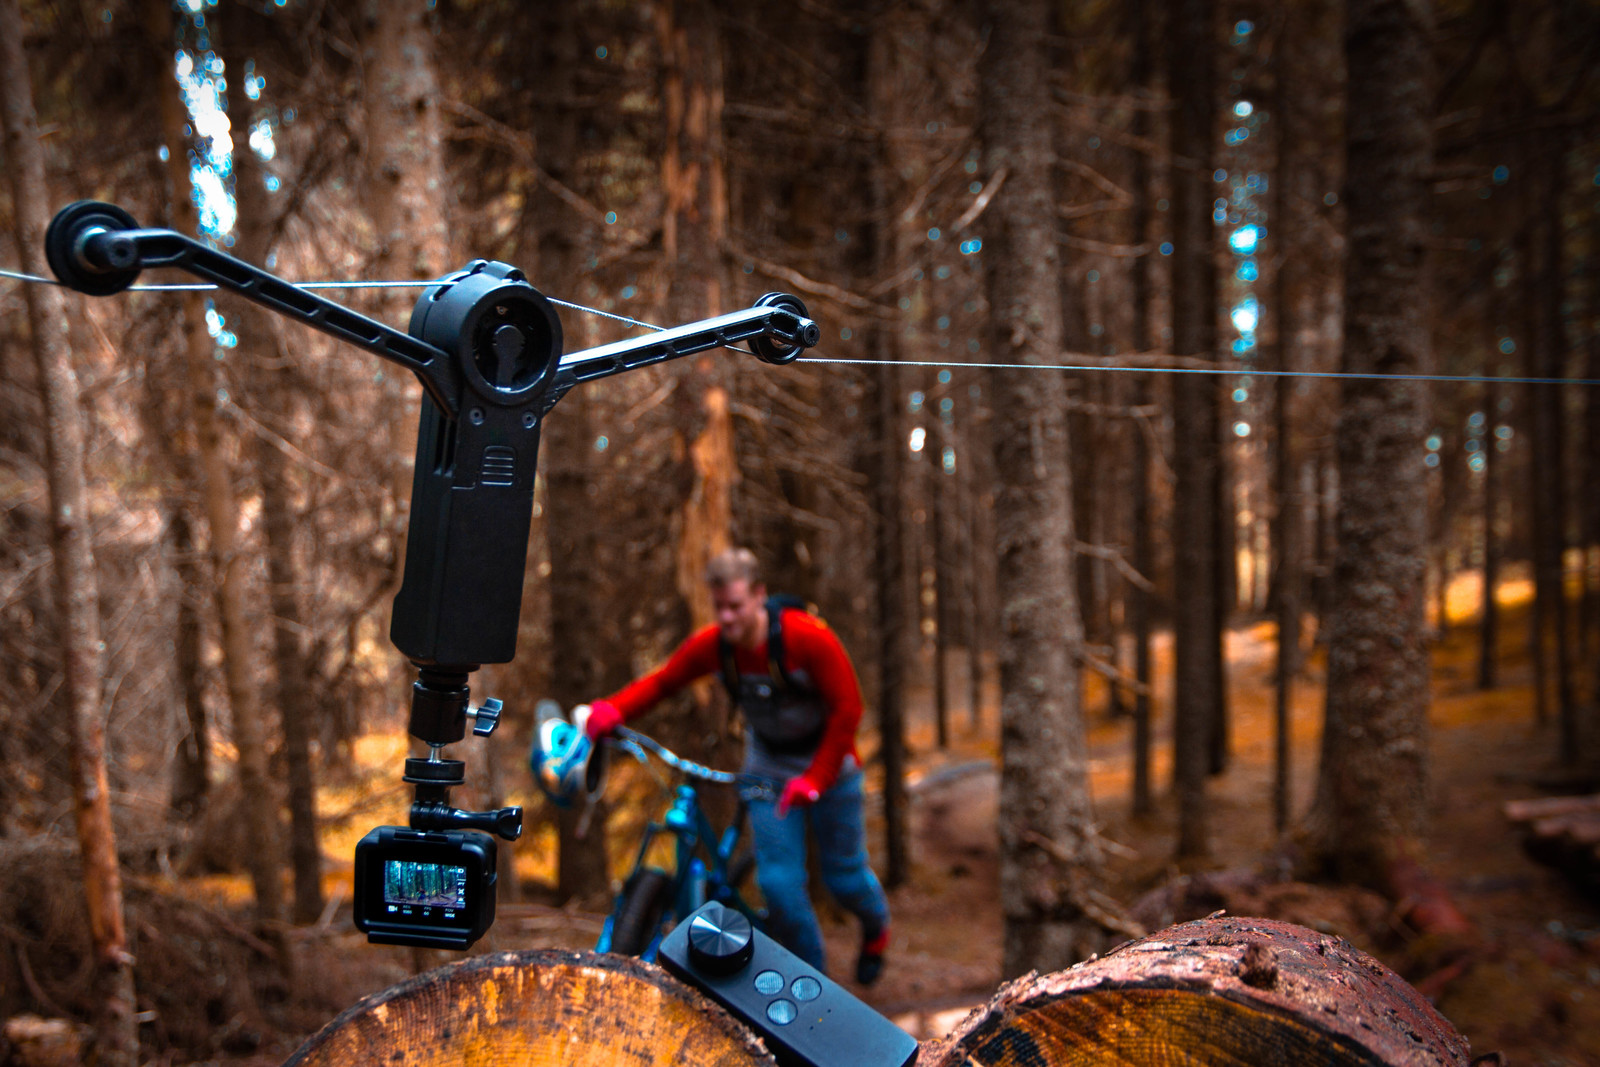 First Look: Wiral LITE - A Remarkably Easy to Use Cable Cam